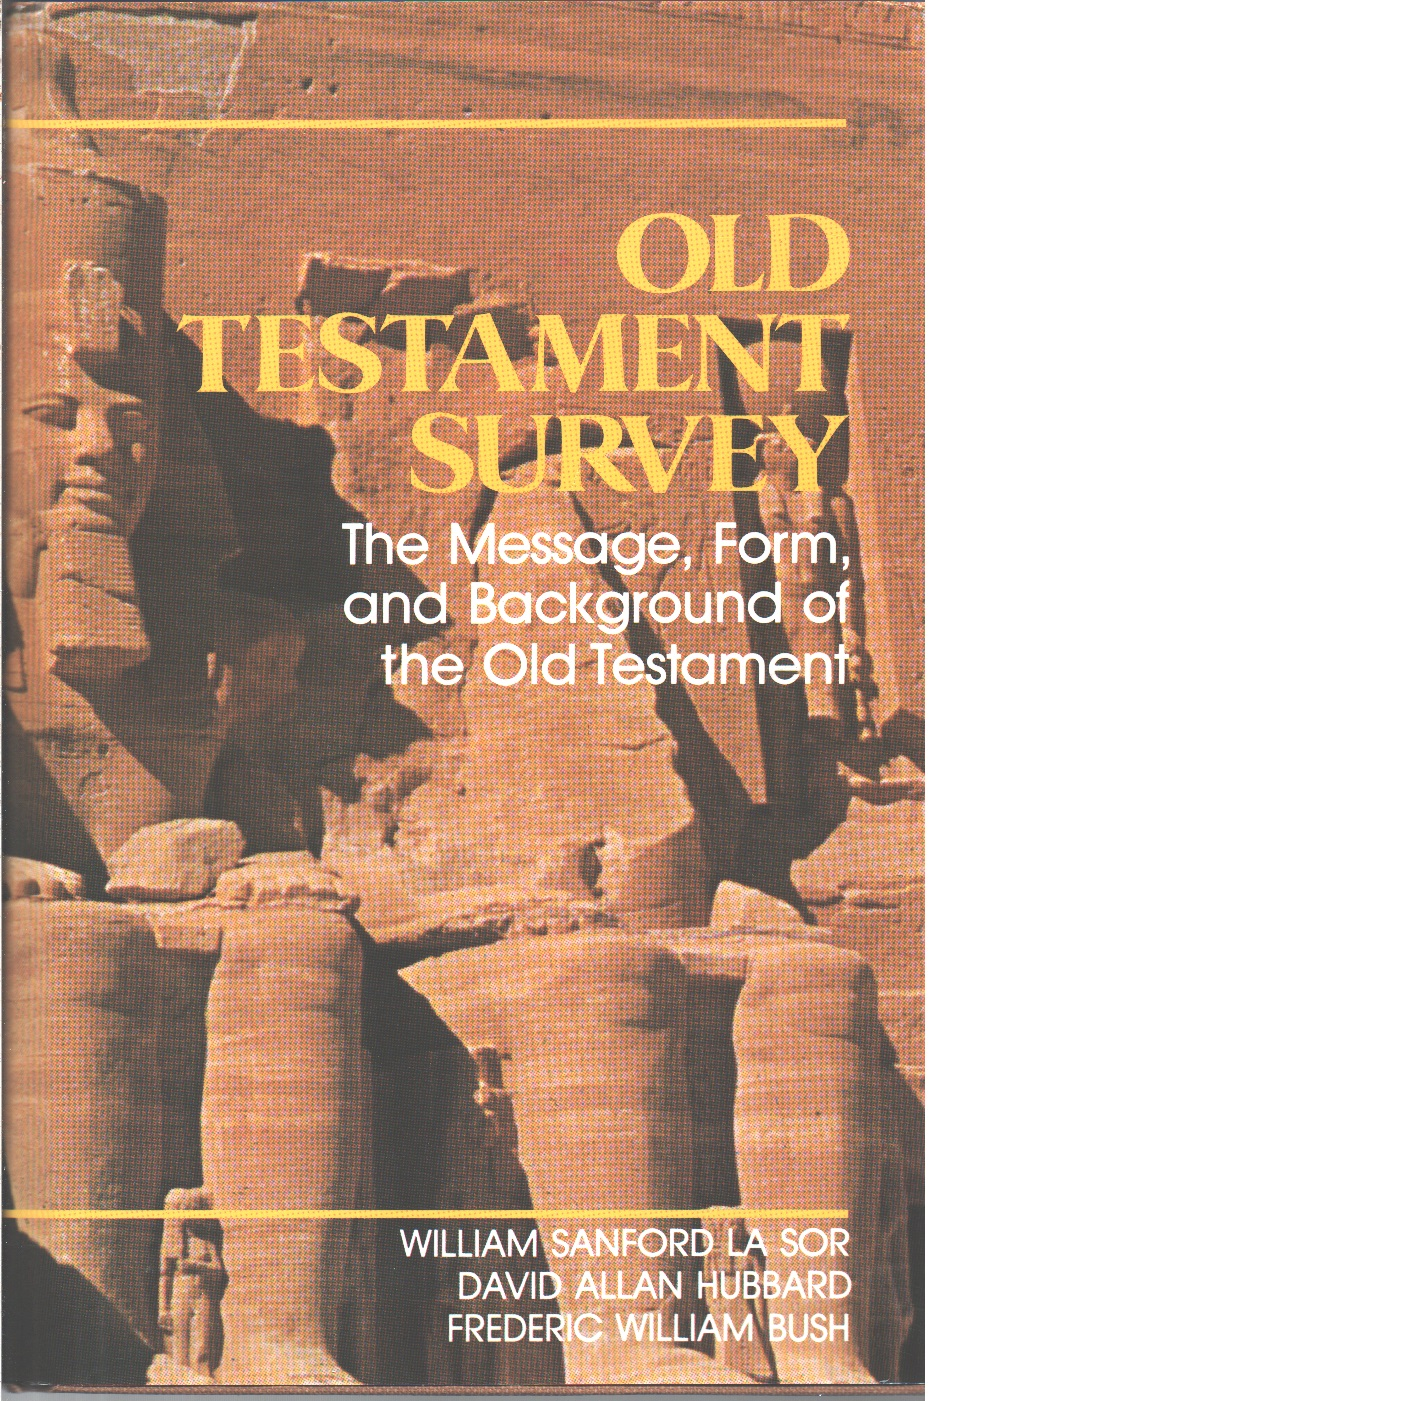 Old Testament survey : the message, form, and background of the Old Testament  - LaSor, William Sanford and Hubbard, David Allan and Bush, Frederic William